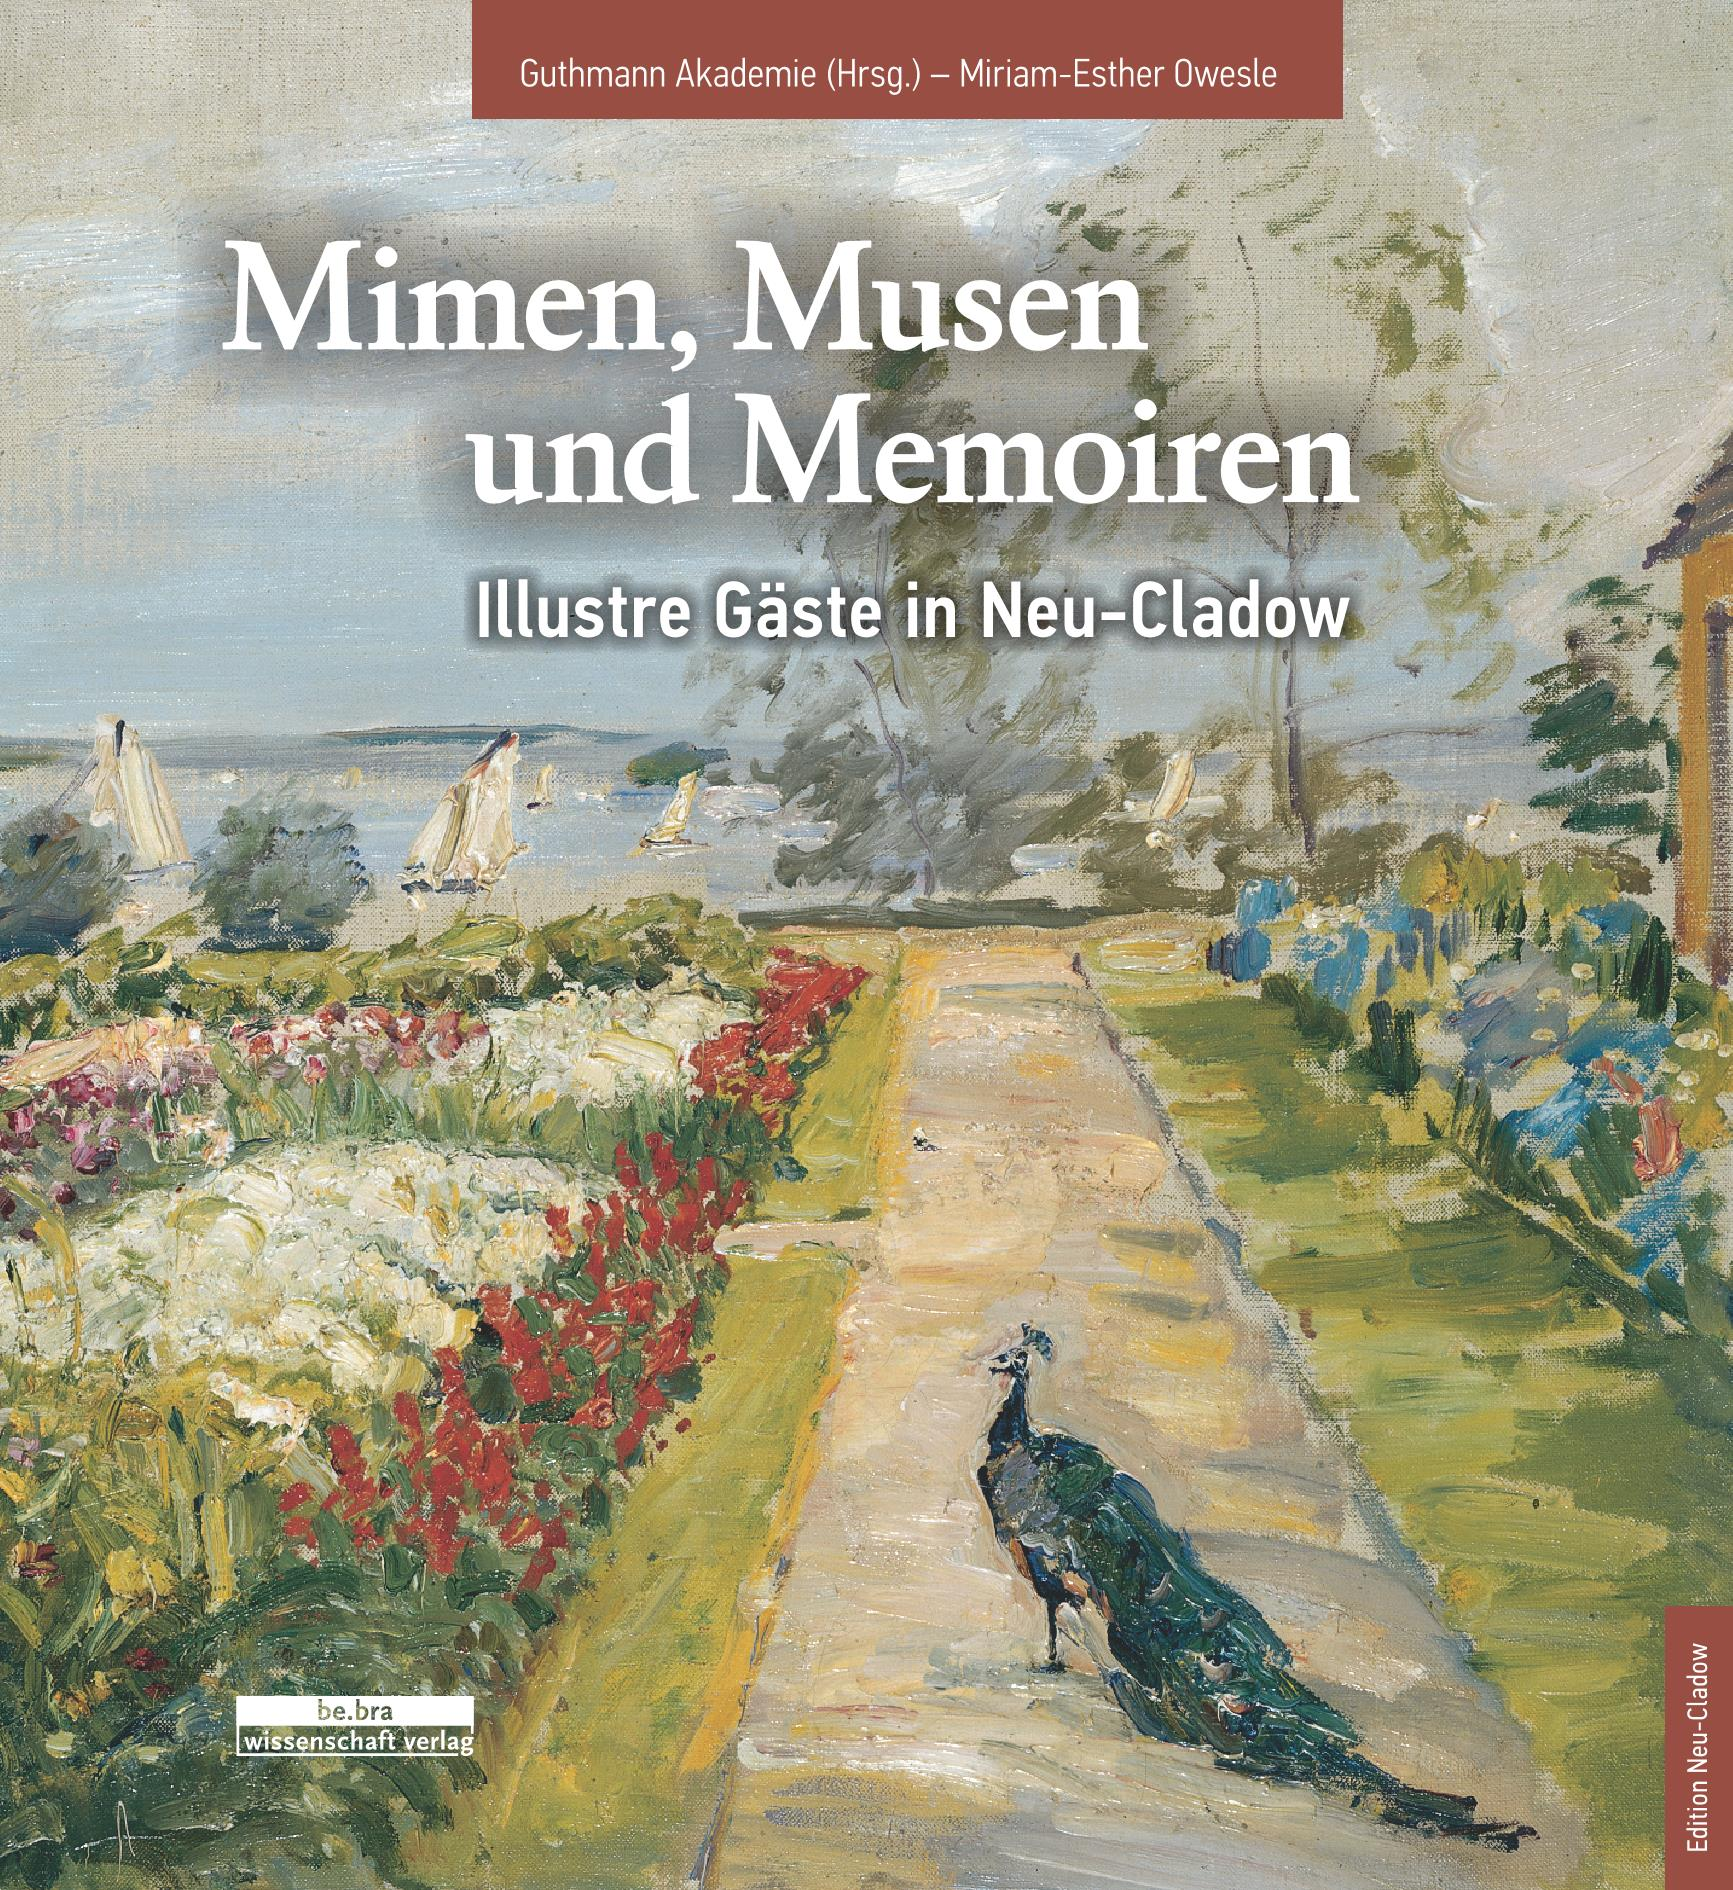 edition neu-cladow band 2 - mimen, musen & memoiren.jpg